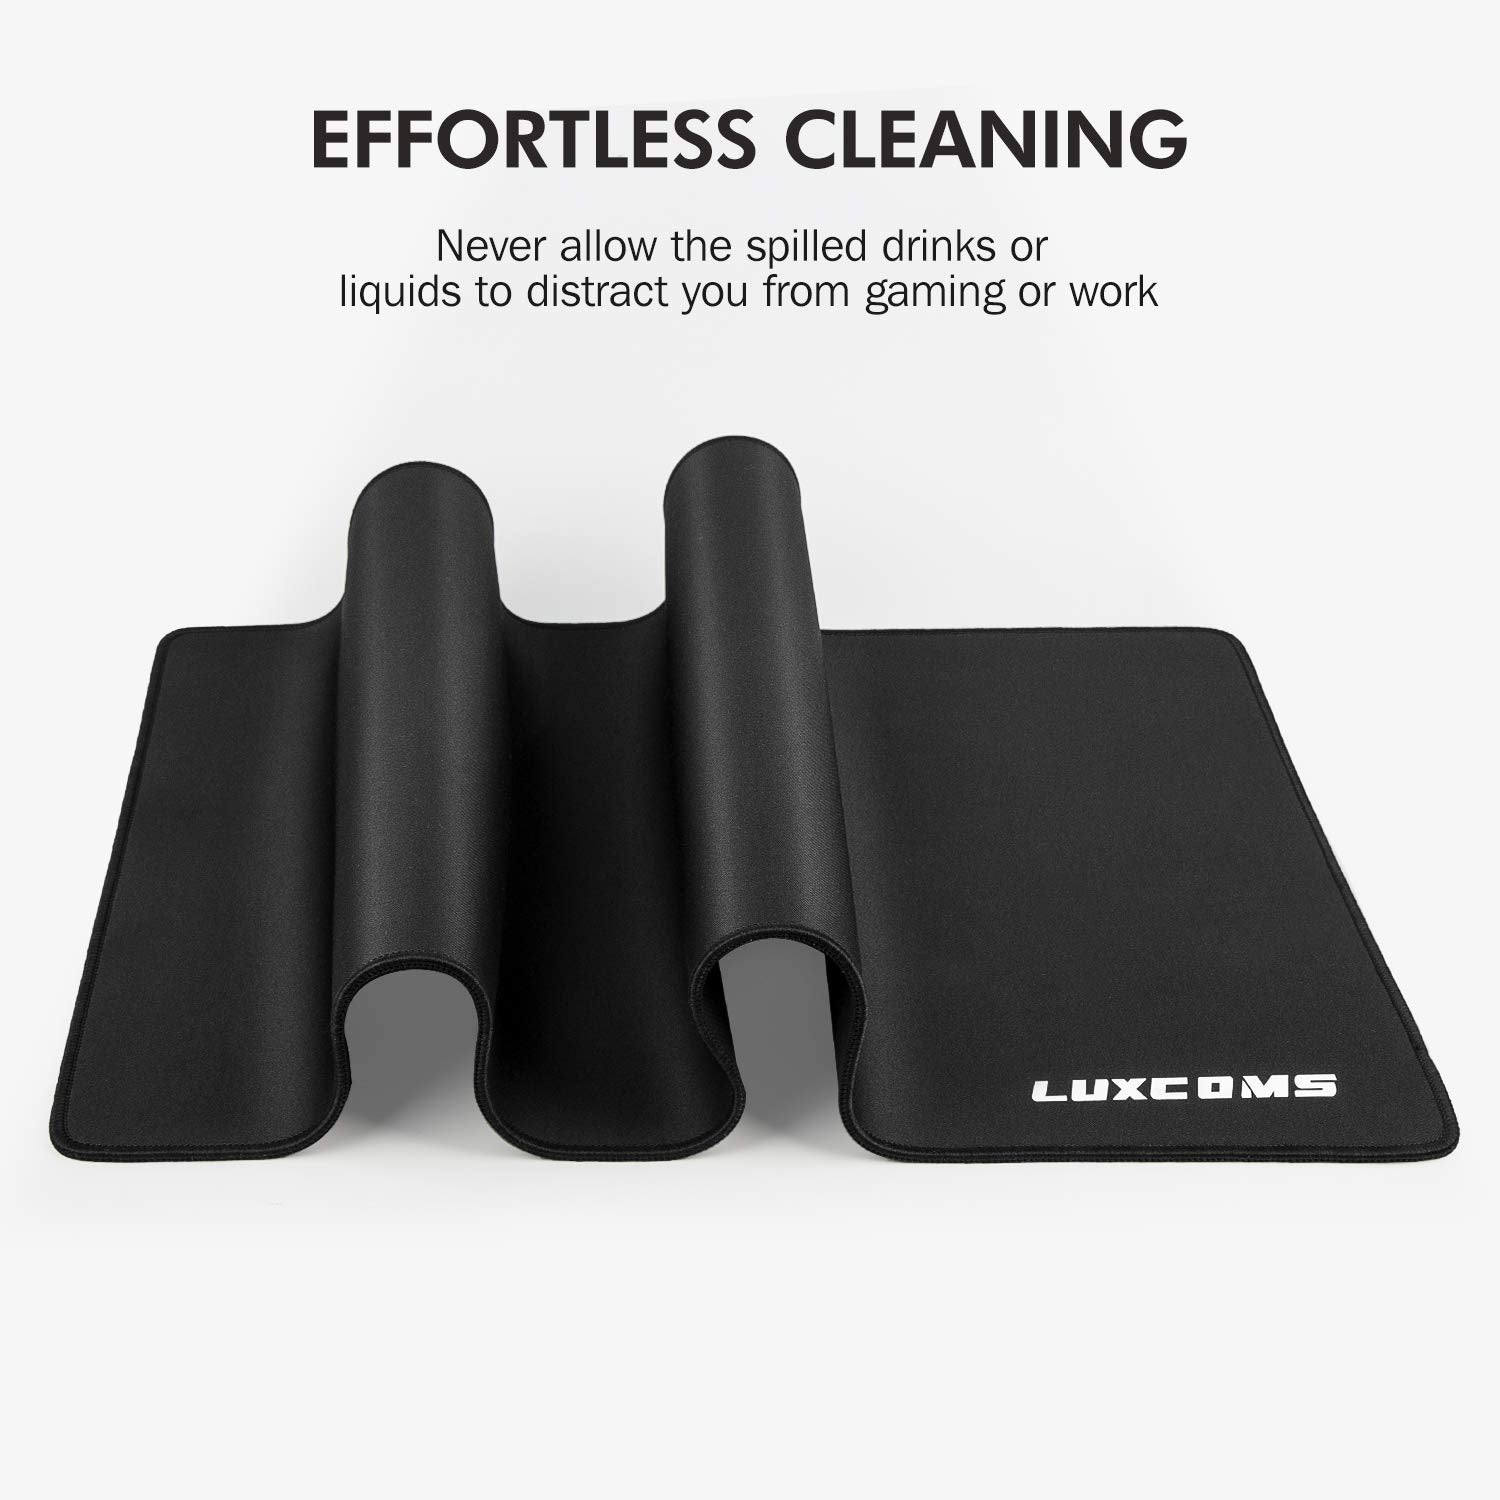 LUXCOMS Large Gaming Mouse Pad,Ergonomic Gel Computer Extended Computer Keyboard Mousepad (31.5×15.75×0.12 in)